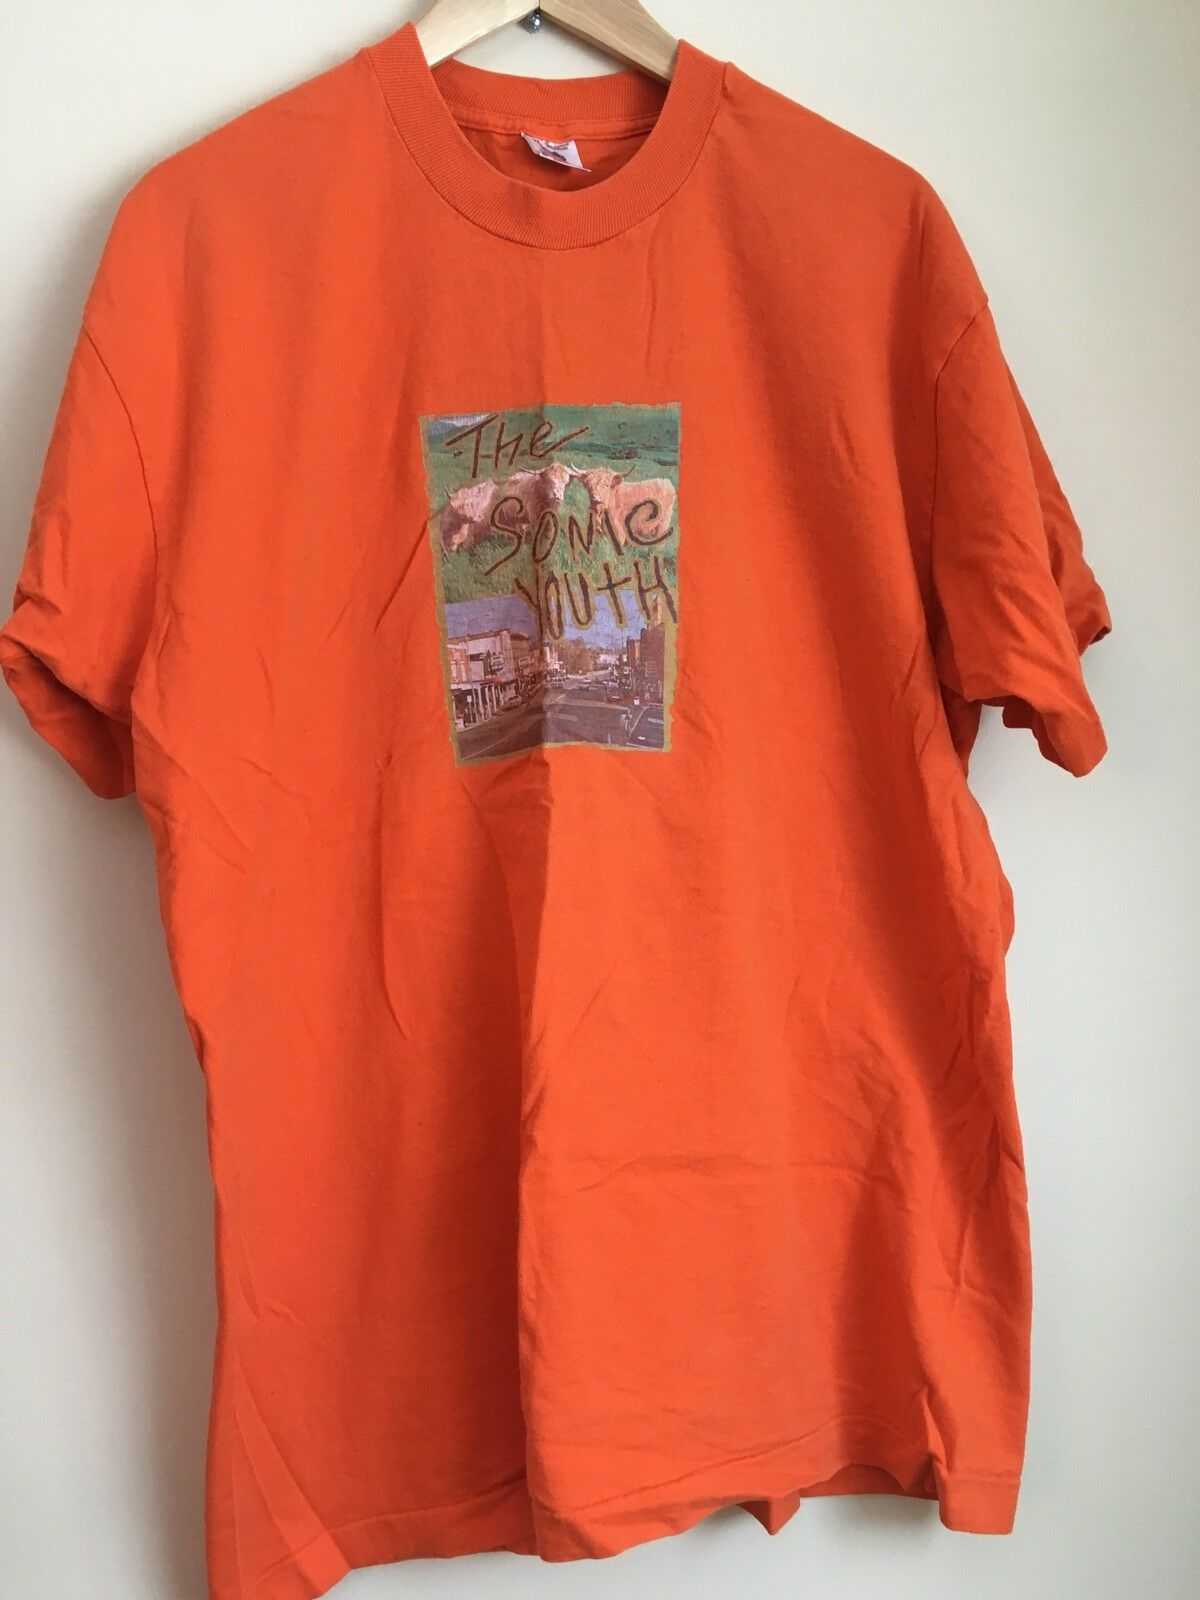 Vintage Sonic Youth Sister T-shirt. Size XL